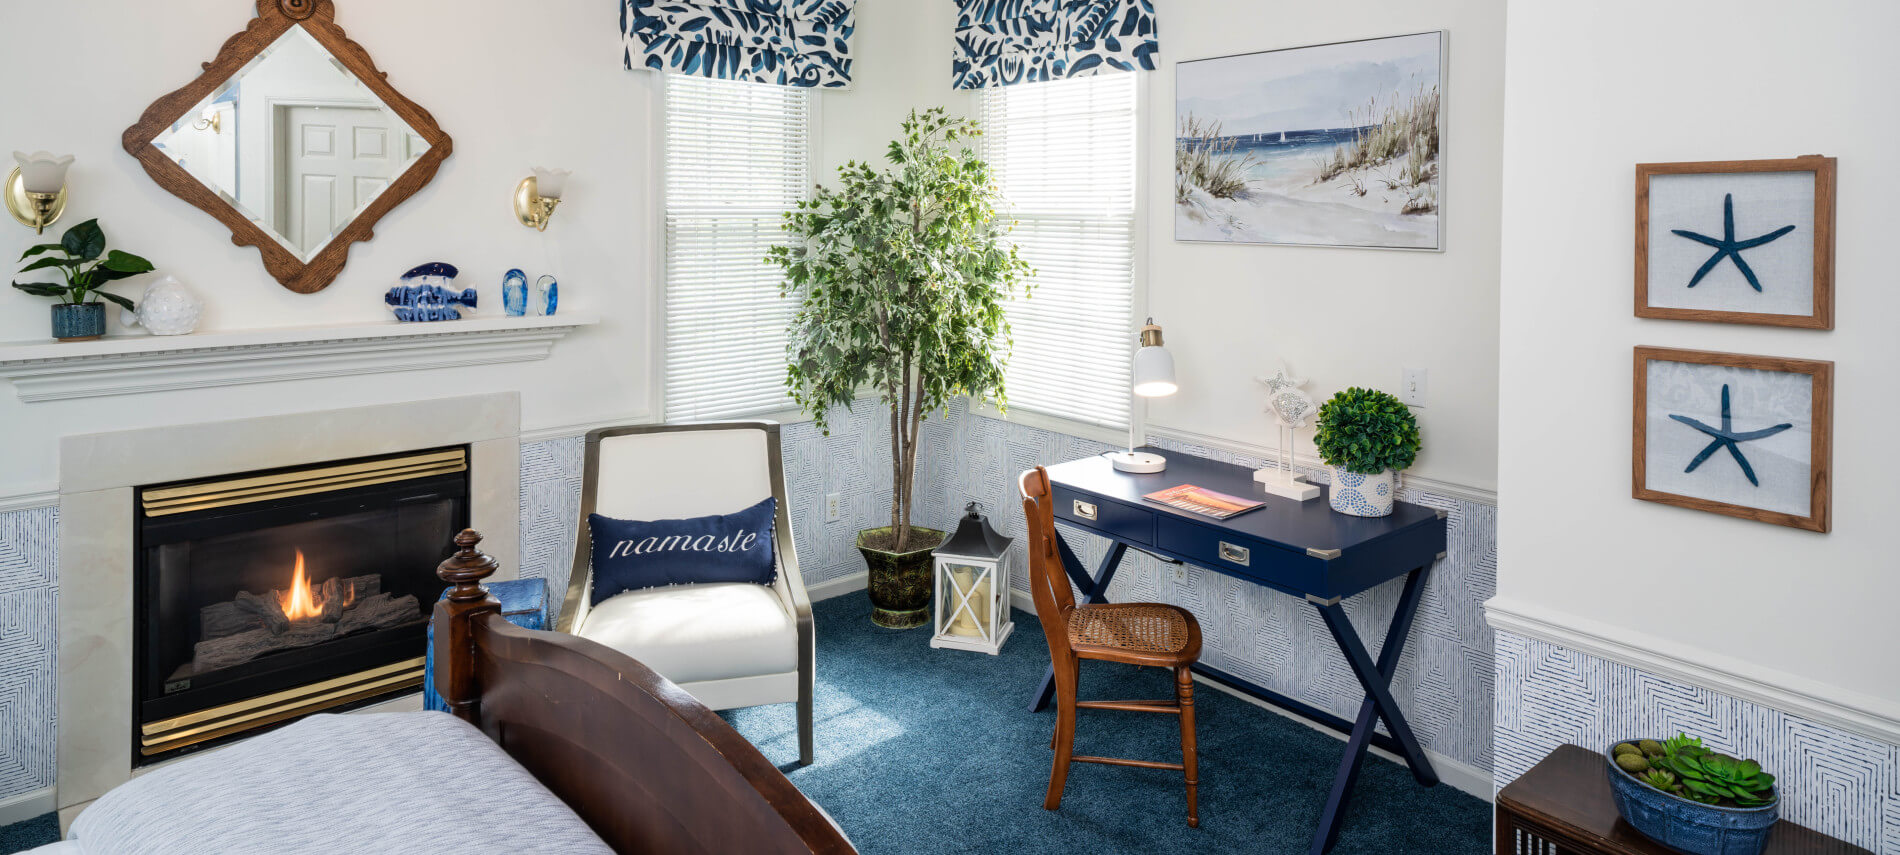 Queen cherry bed with white bedspread, two maroon chairs by fireplace, lace curtains on window, oad dresser with flowers.